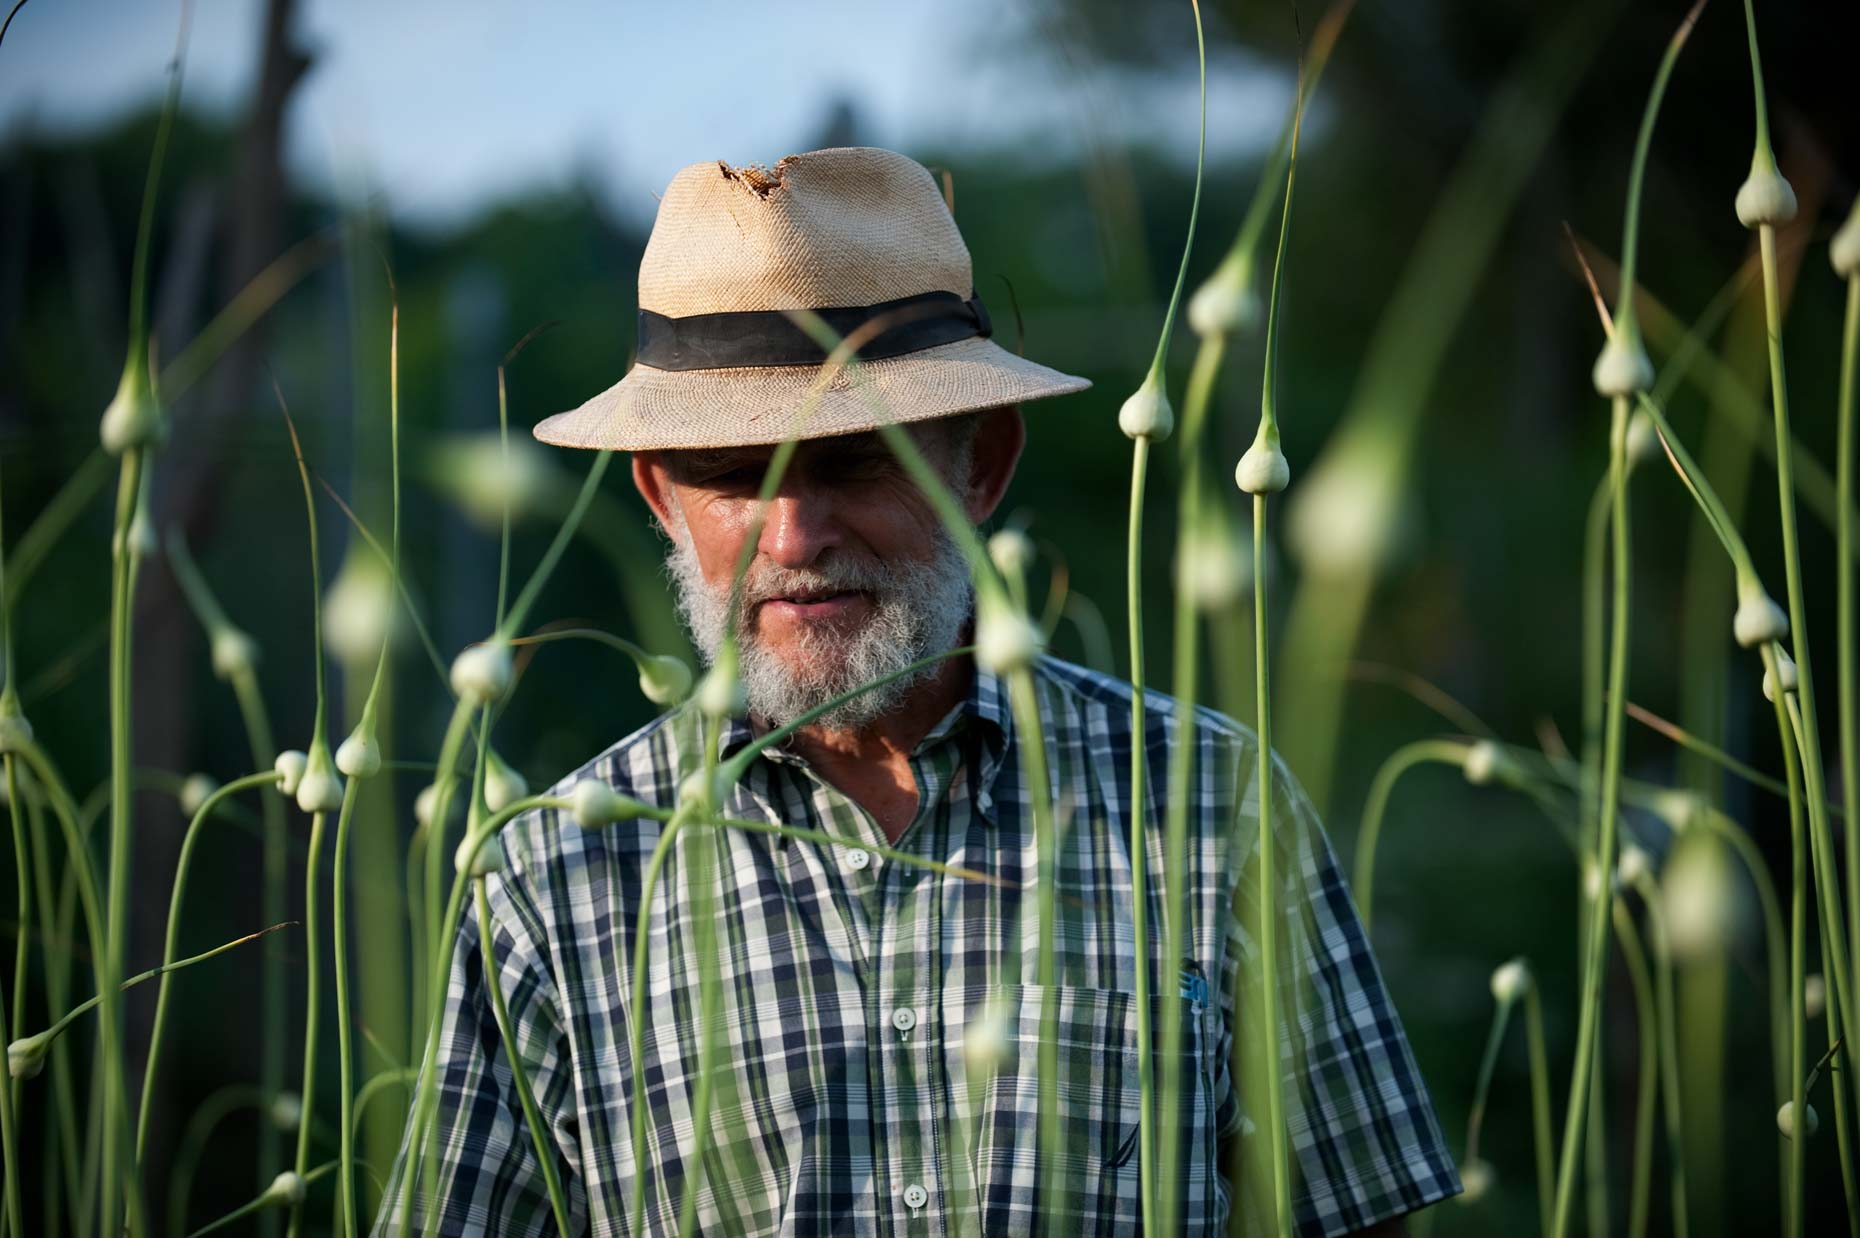 Farmer with garlic scapes